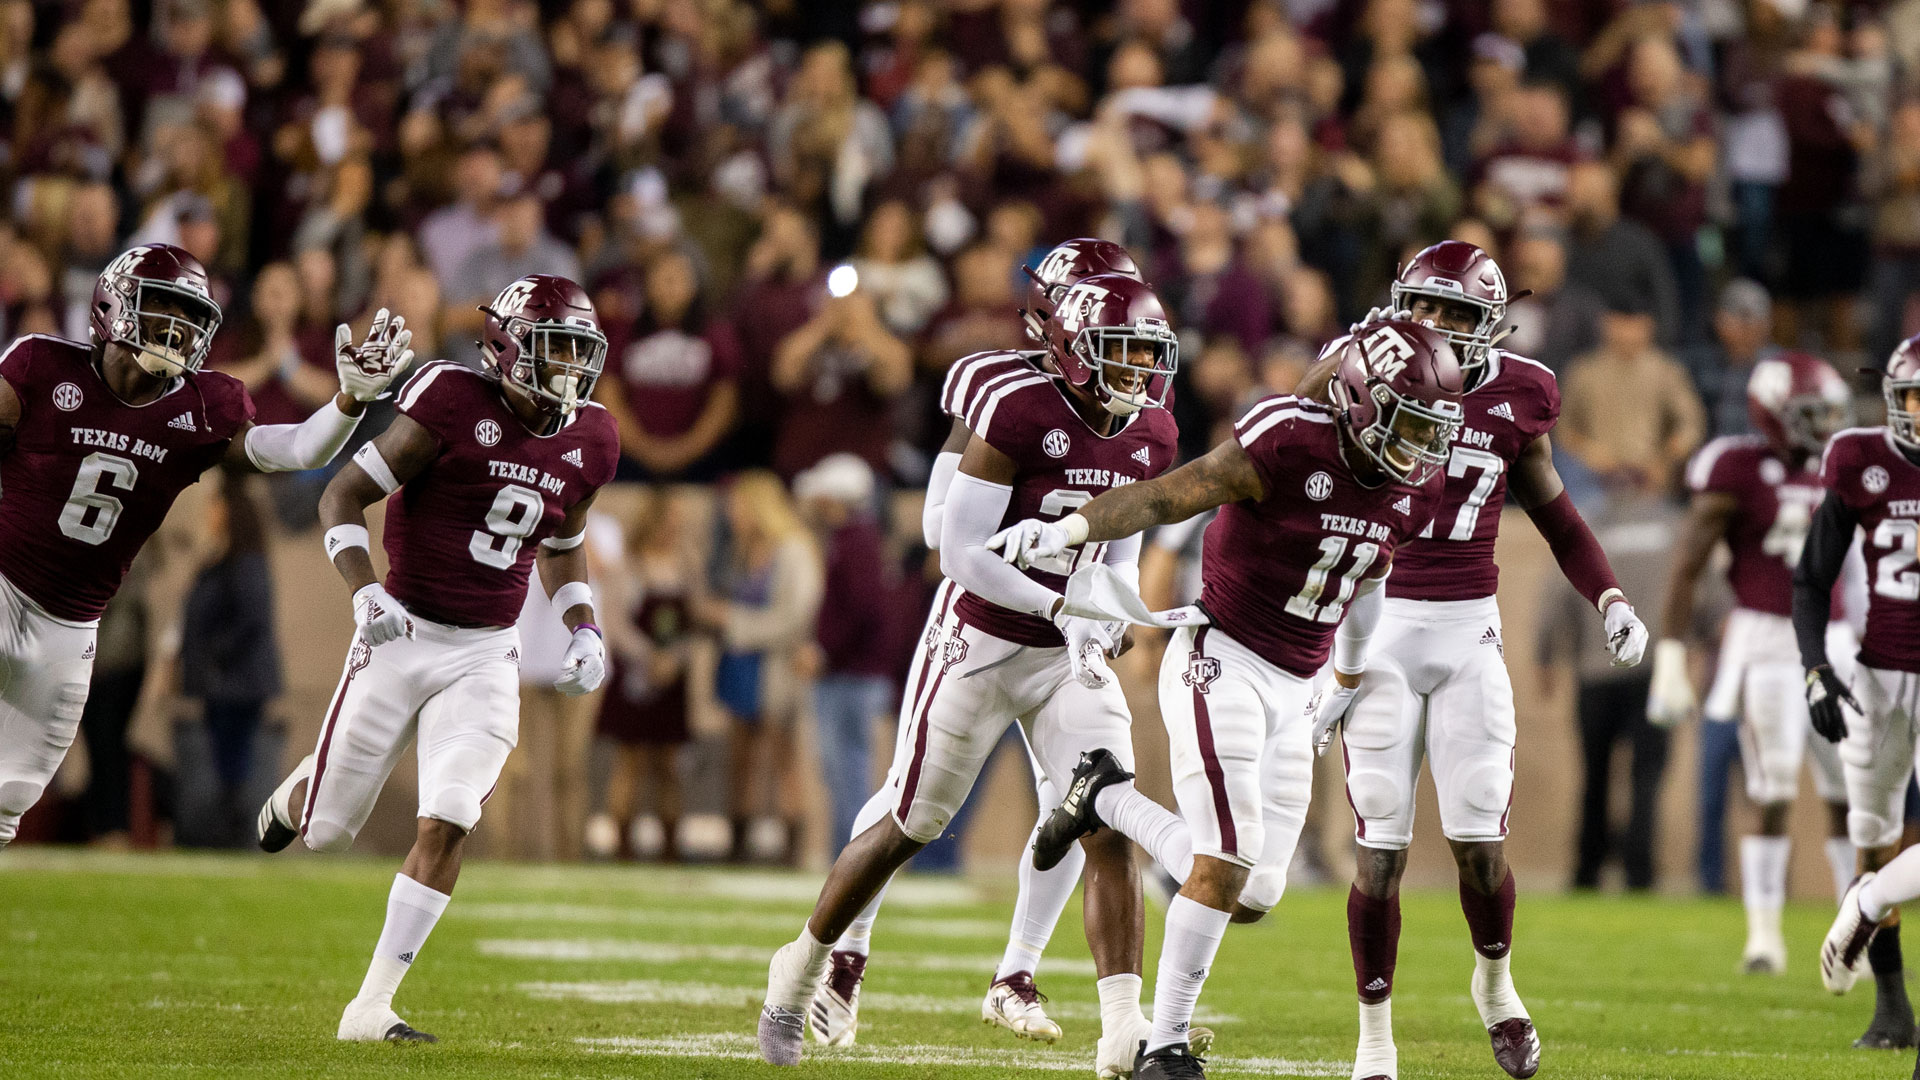 Larry Pryor - Football - Texas A&M Athletics - Home of the 12th Man